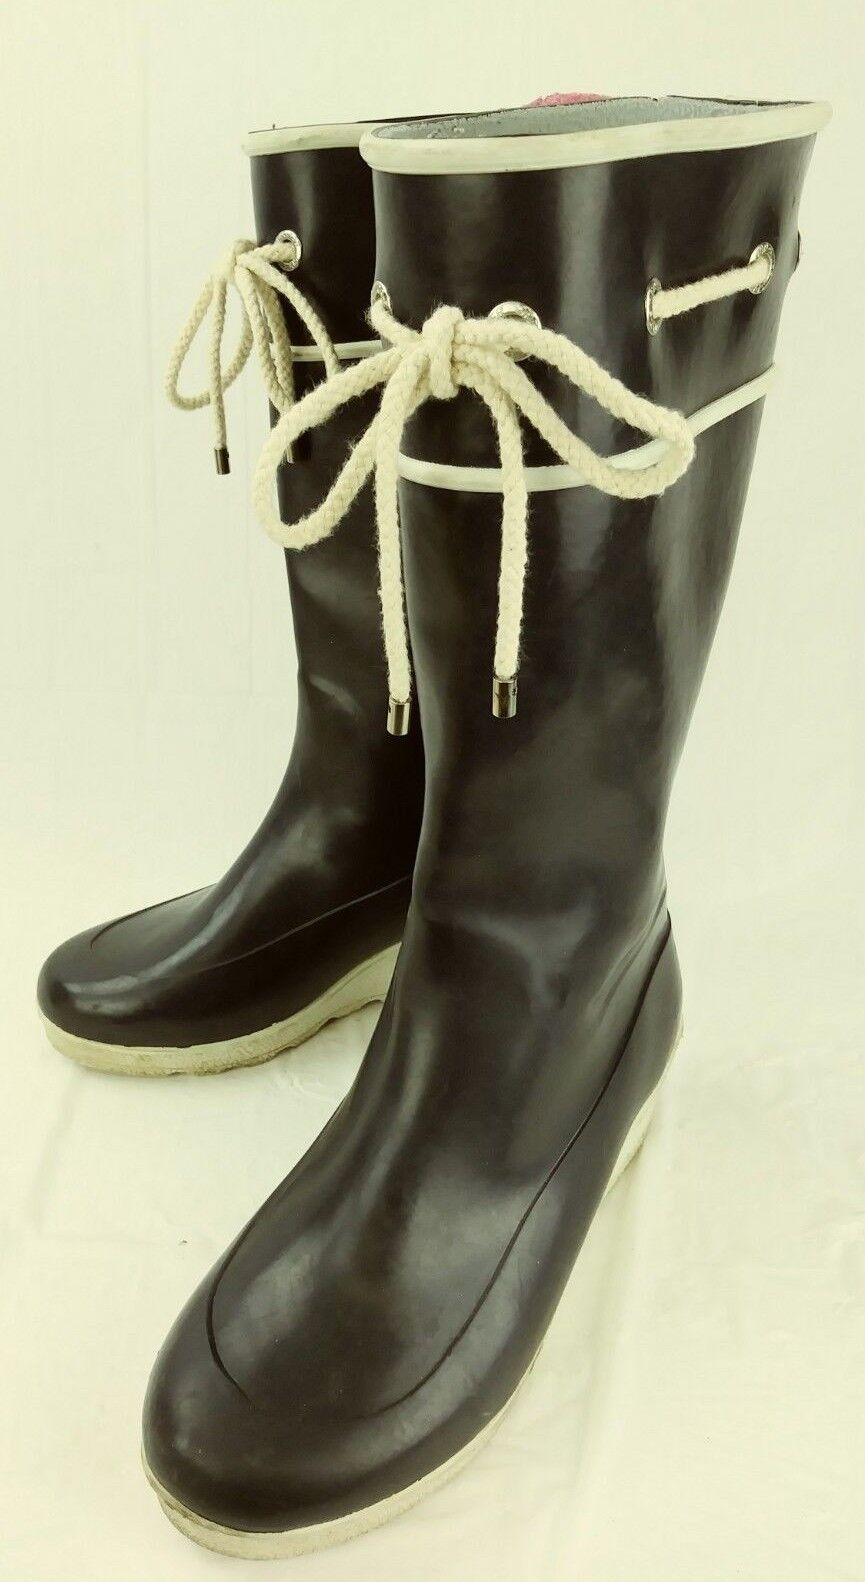 Sperry Top-Sider Wos Boots 9853797 US9 bluee White Rubber Pull On Waterproof 2730